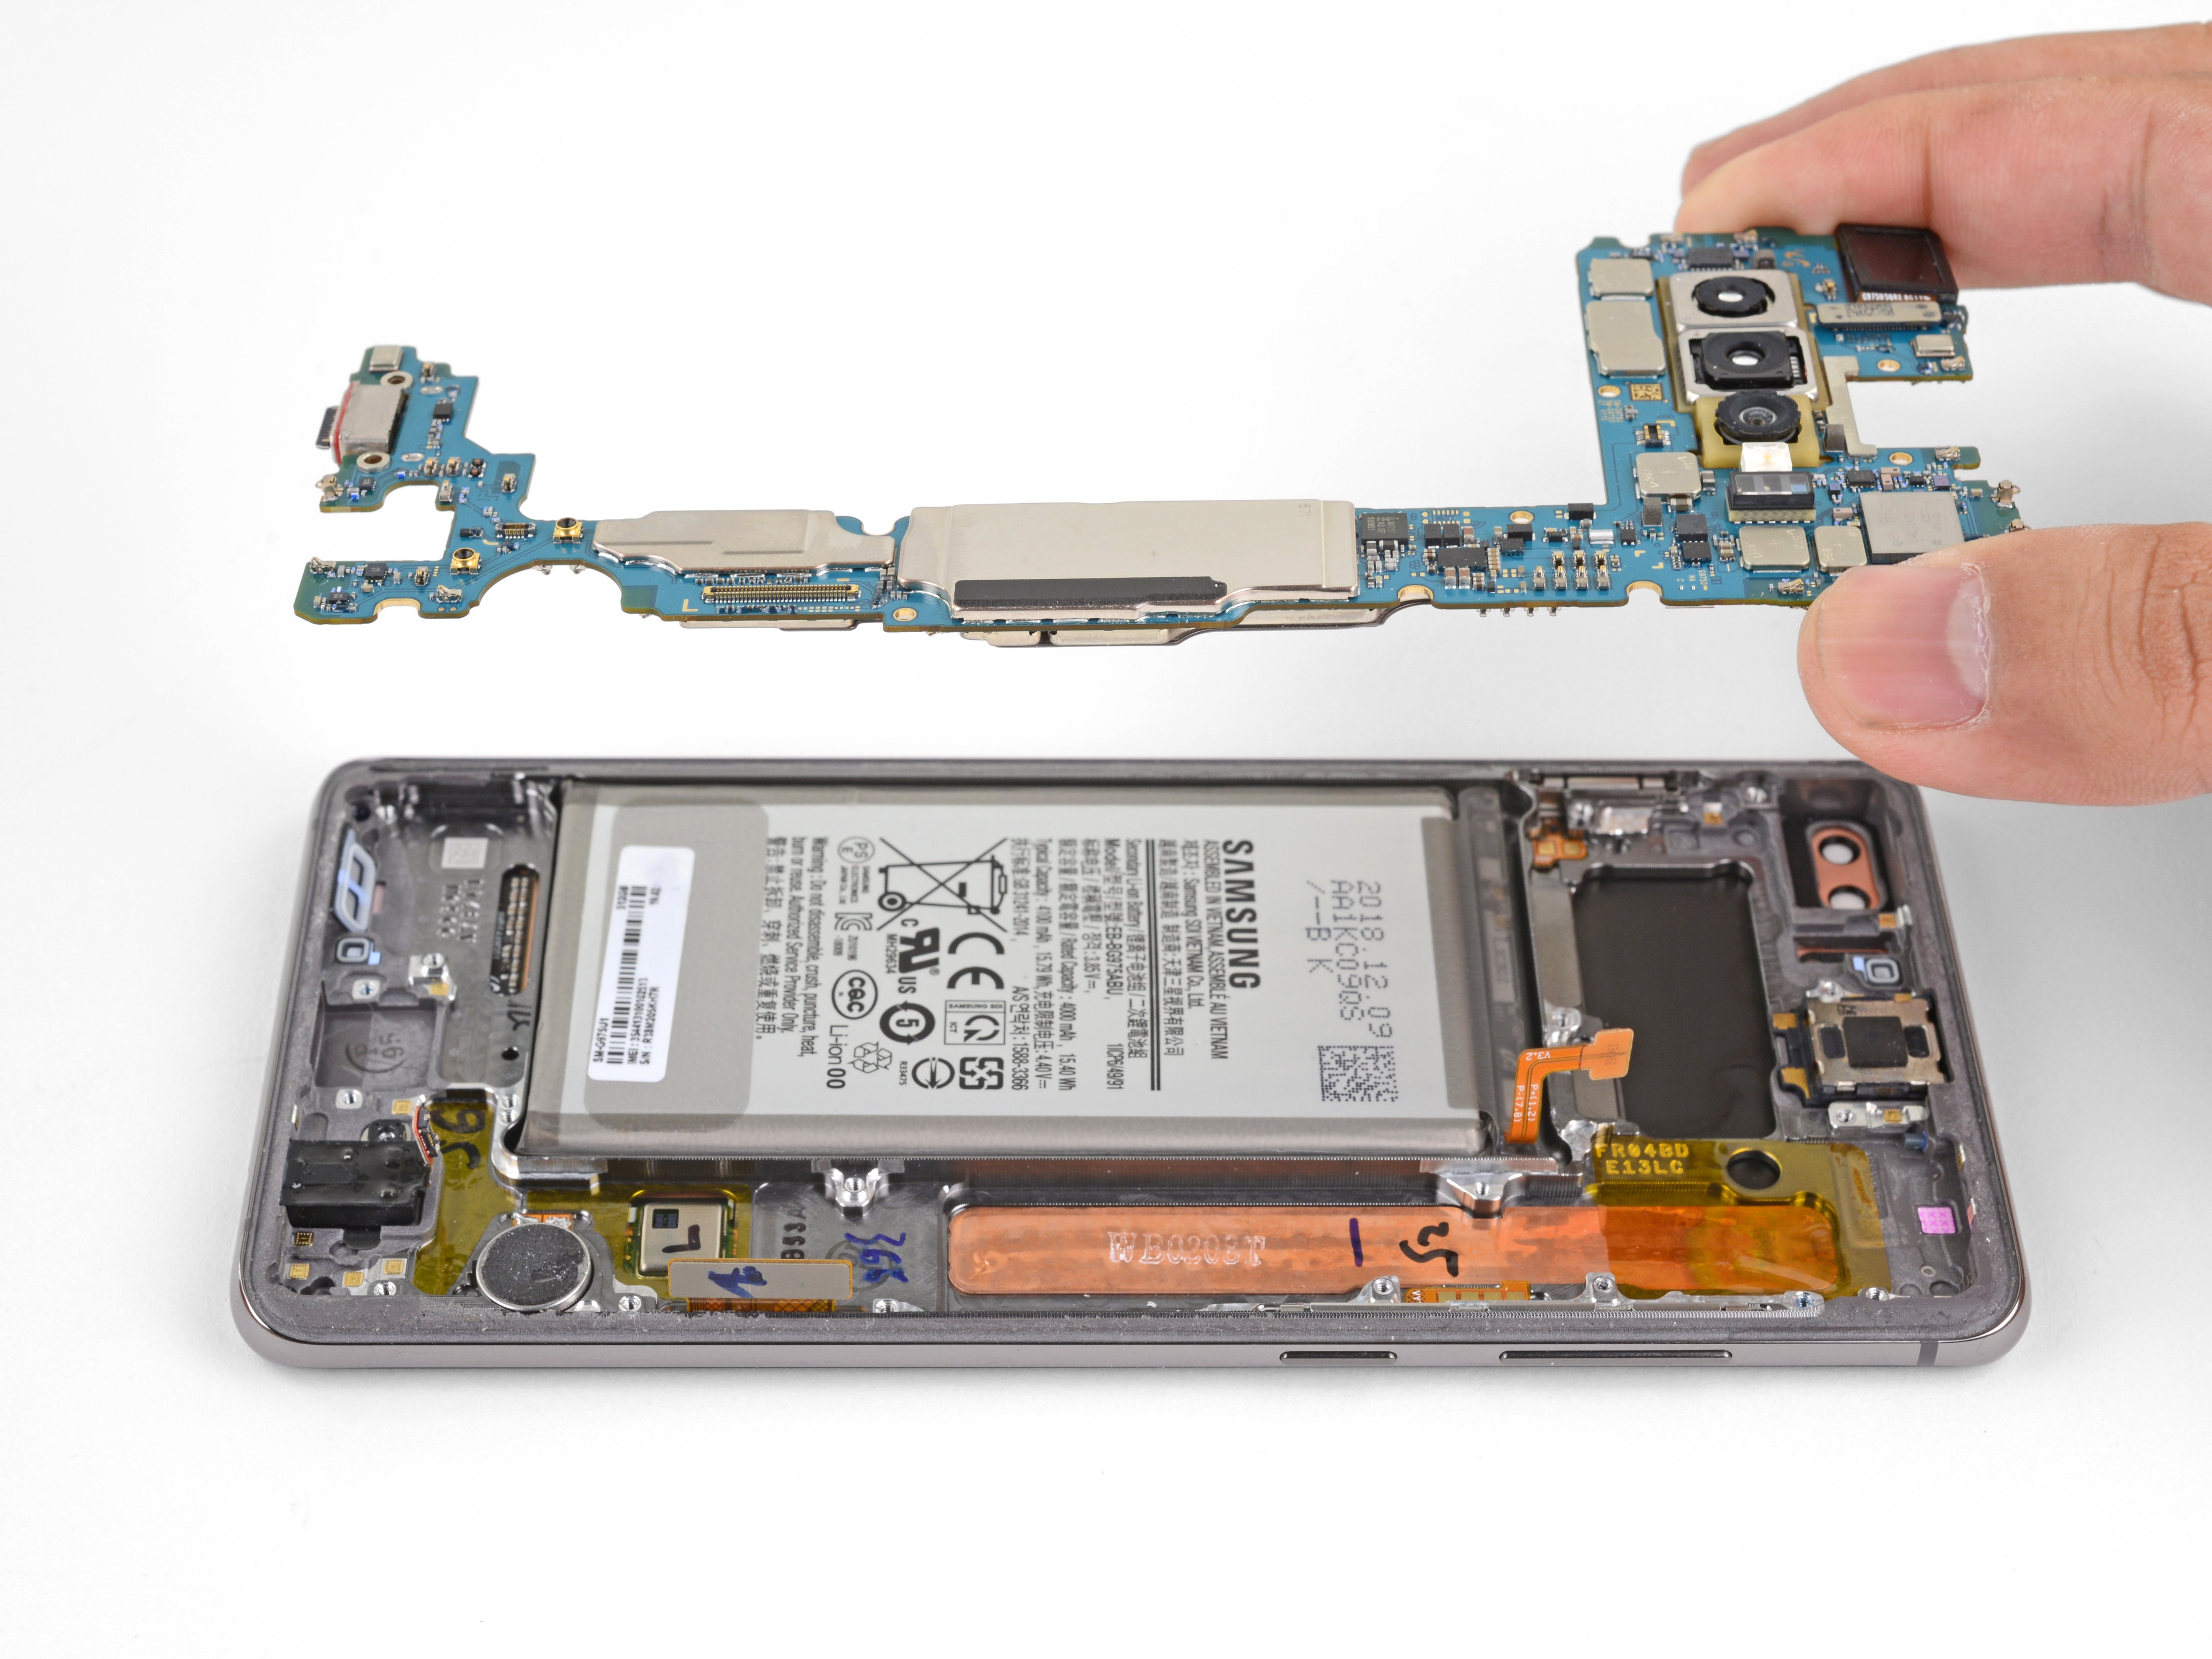 Samsung Galaxy S10 Plus Motherboard Replacement - iFixit Repair Guide